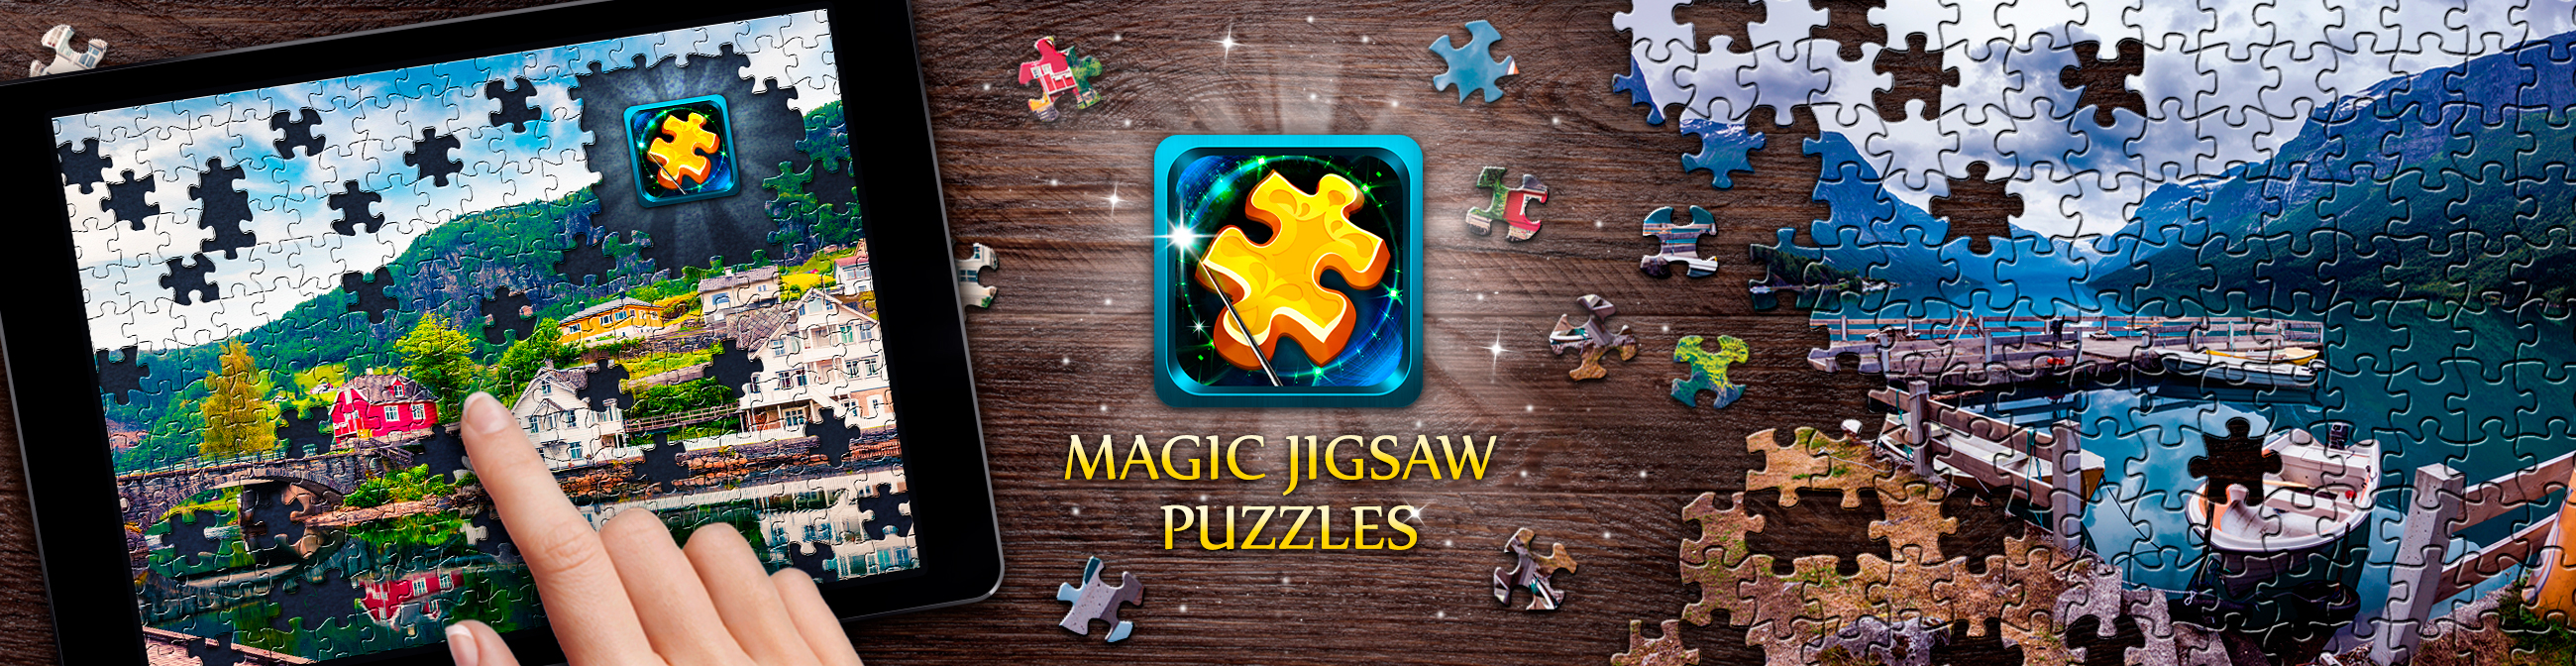 Magic Jigsaw Puzzles баннер